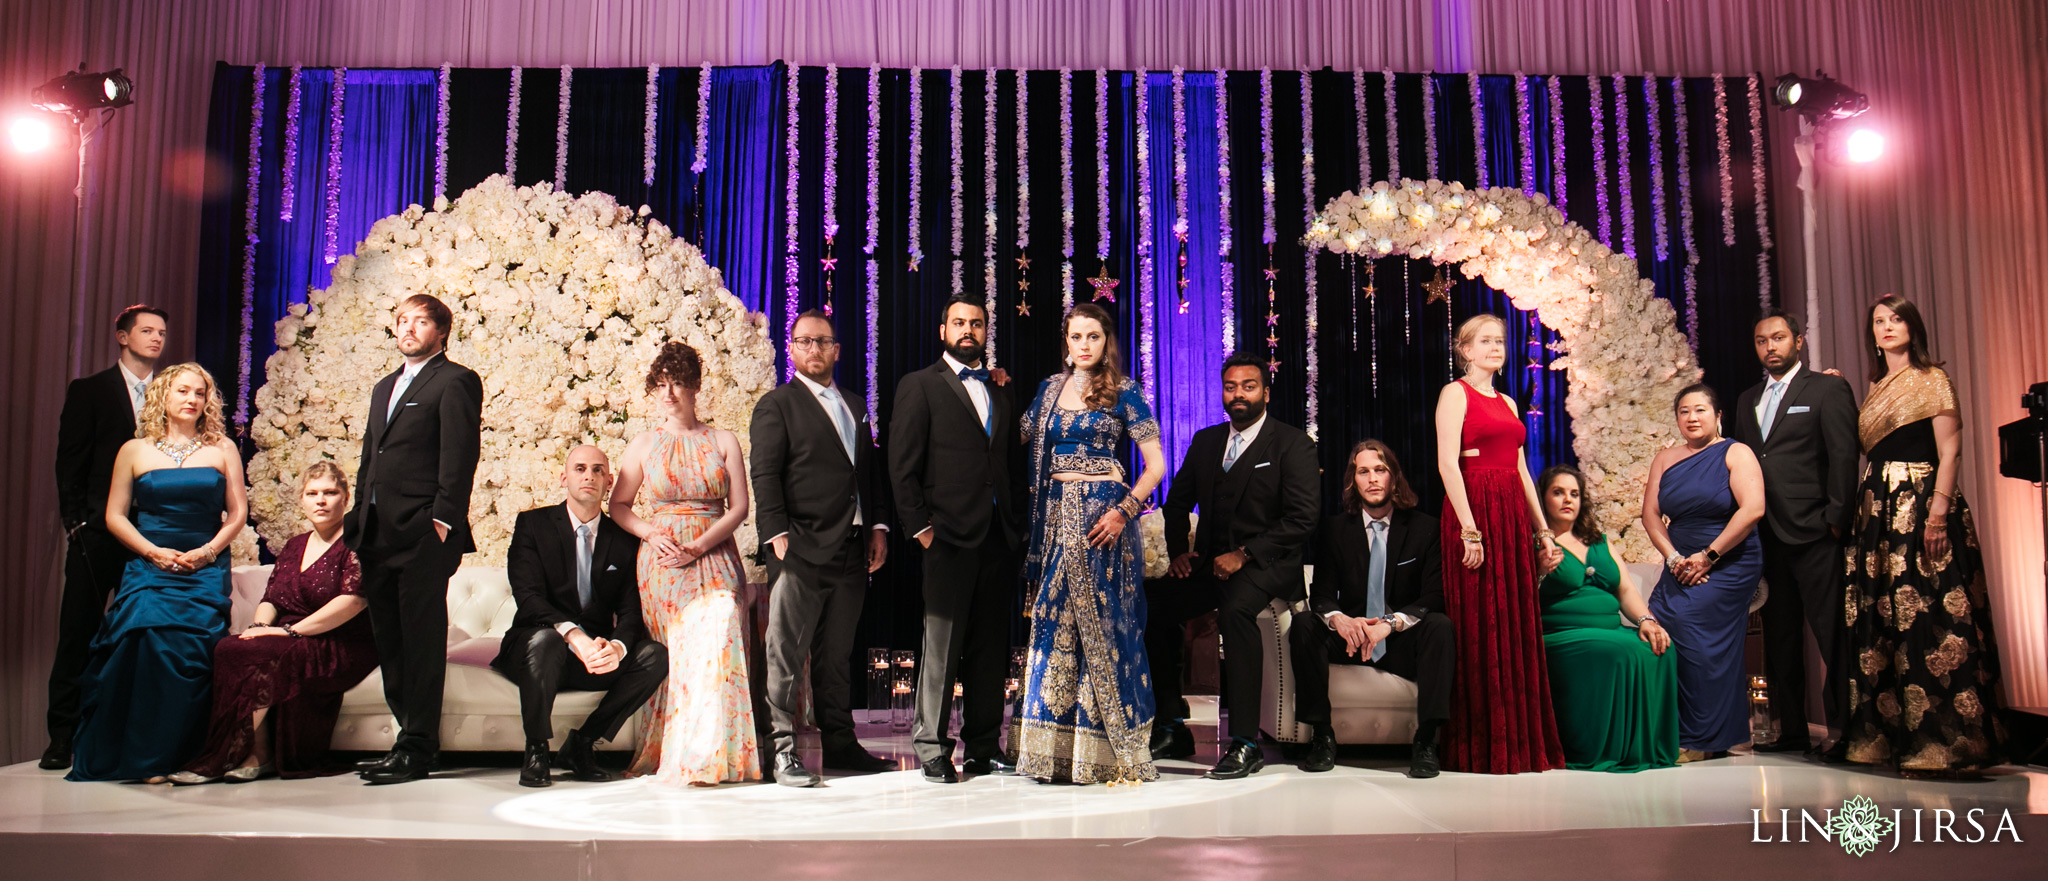 13 Hotel Irvine Joint Indian Reception Wedding Photography